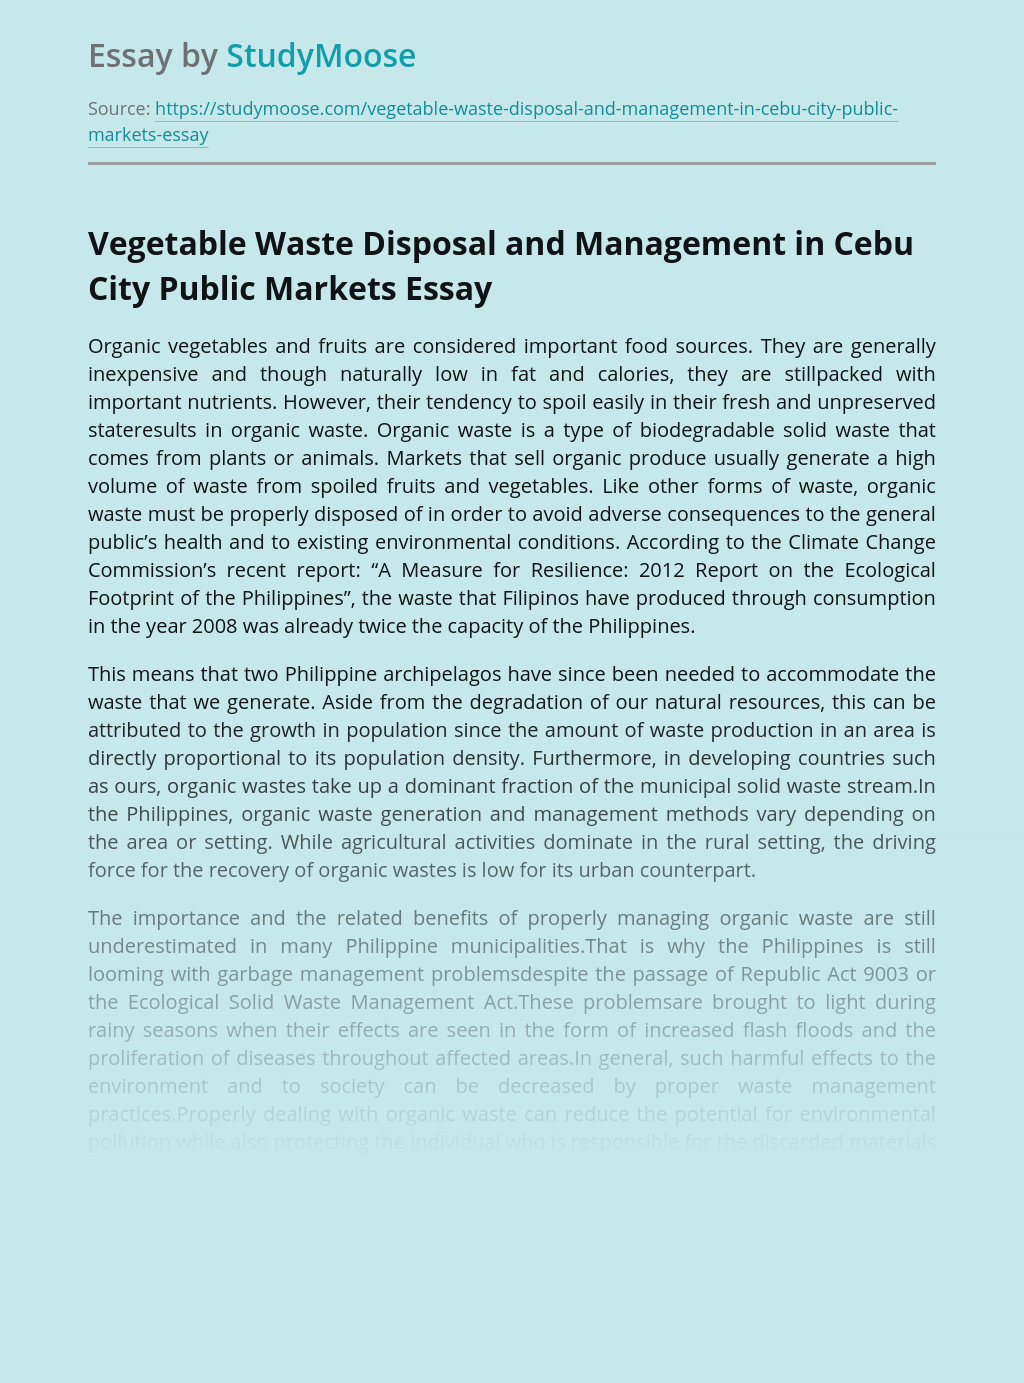 Vegetable Waste Disposal and Management in Cebu City Public Markets